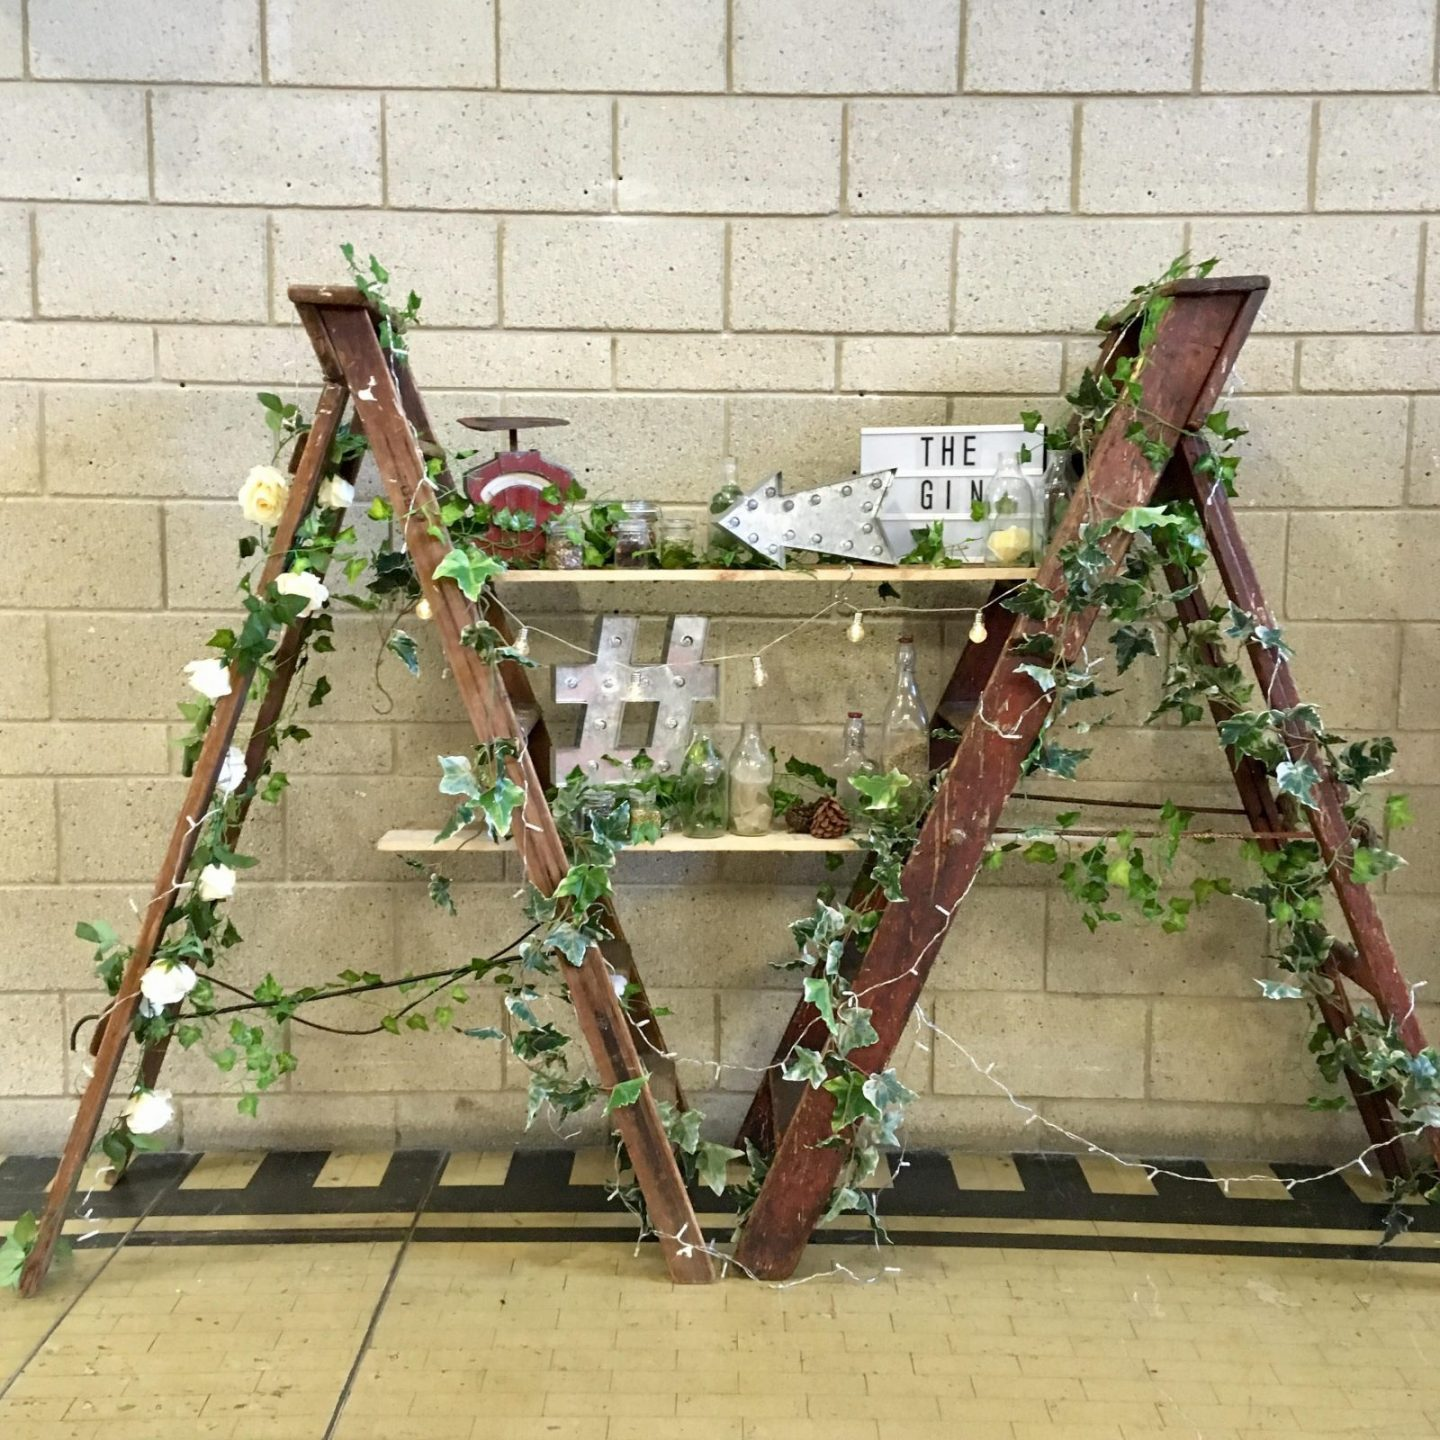 floral display of ladders wrapped in flowers, light boards and gin bottles